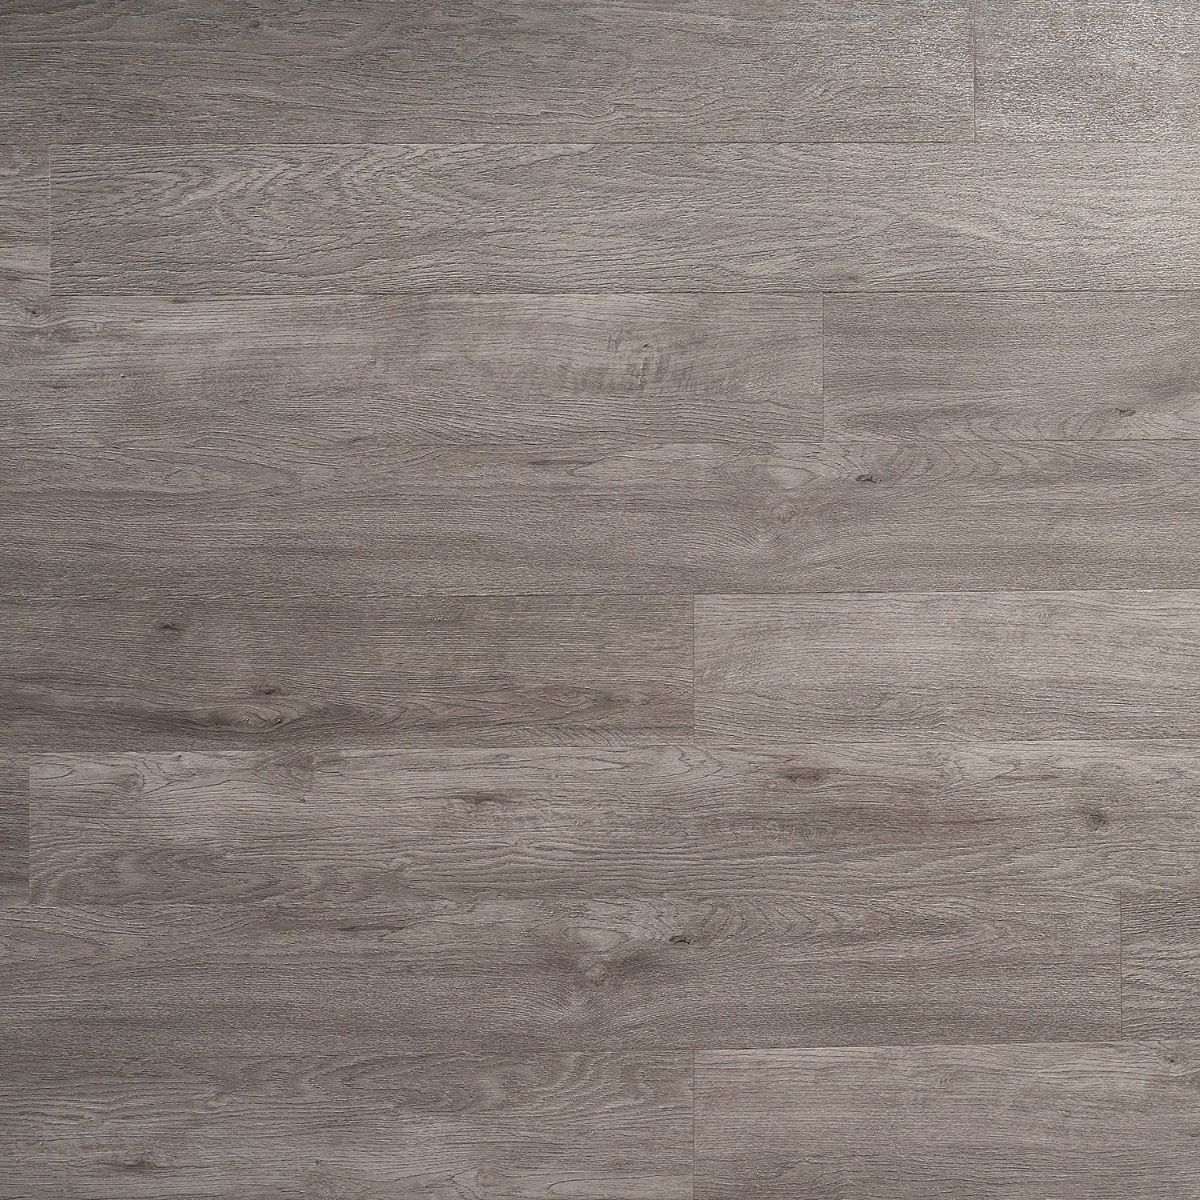 Katone Heartwood Ash 6x48 Glue DownLuxury Vinyl Tile